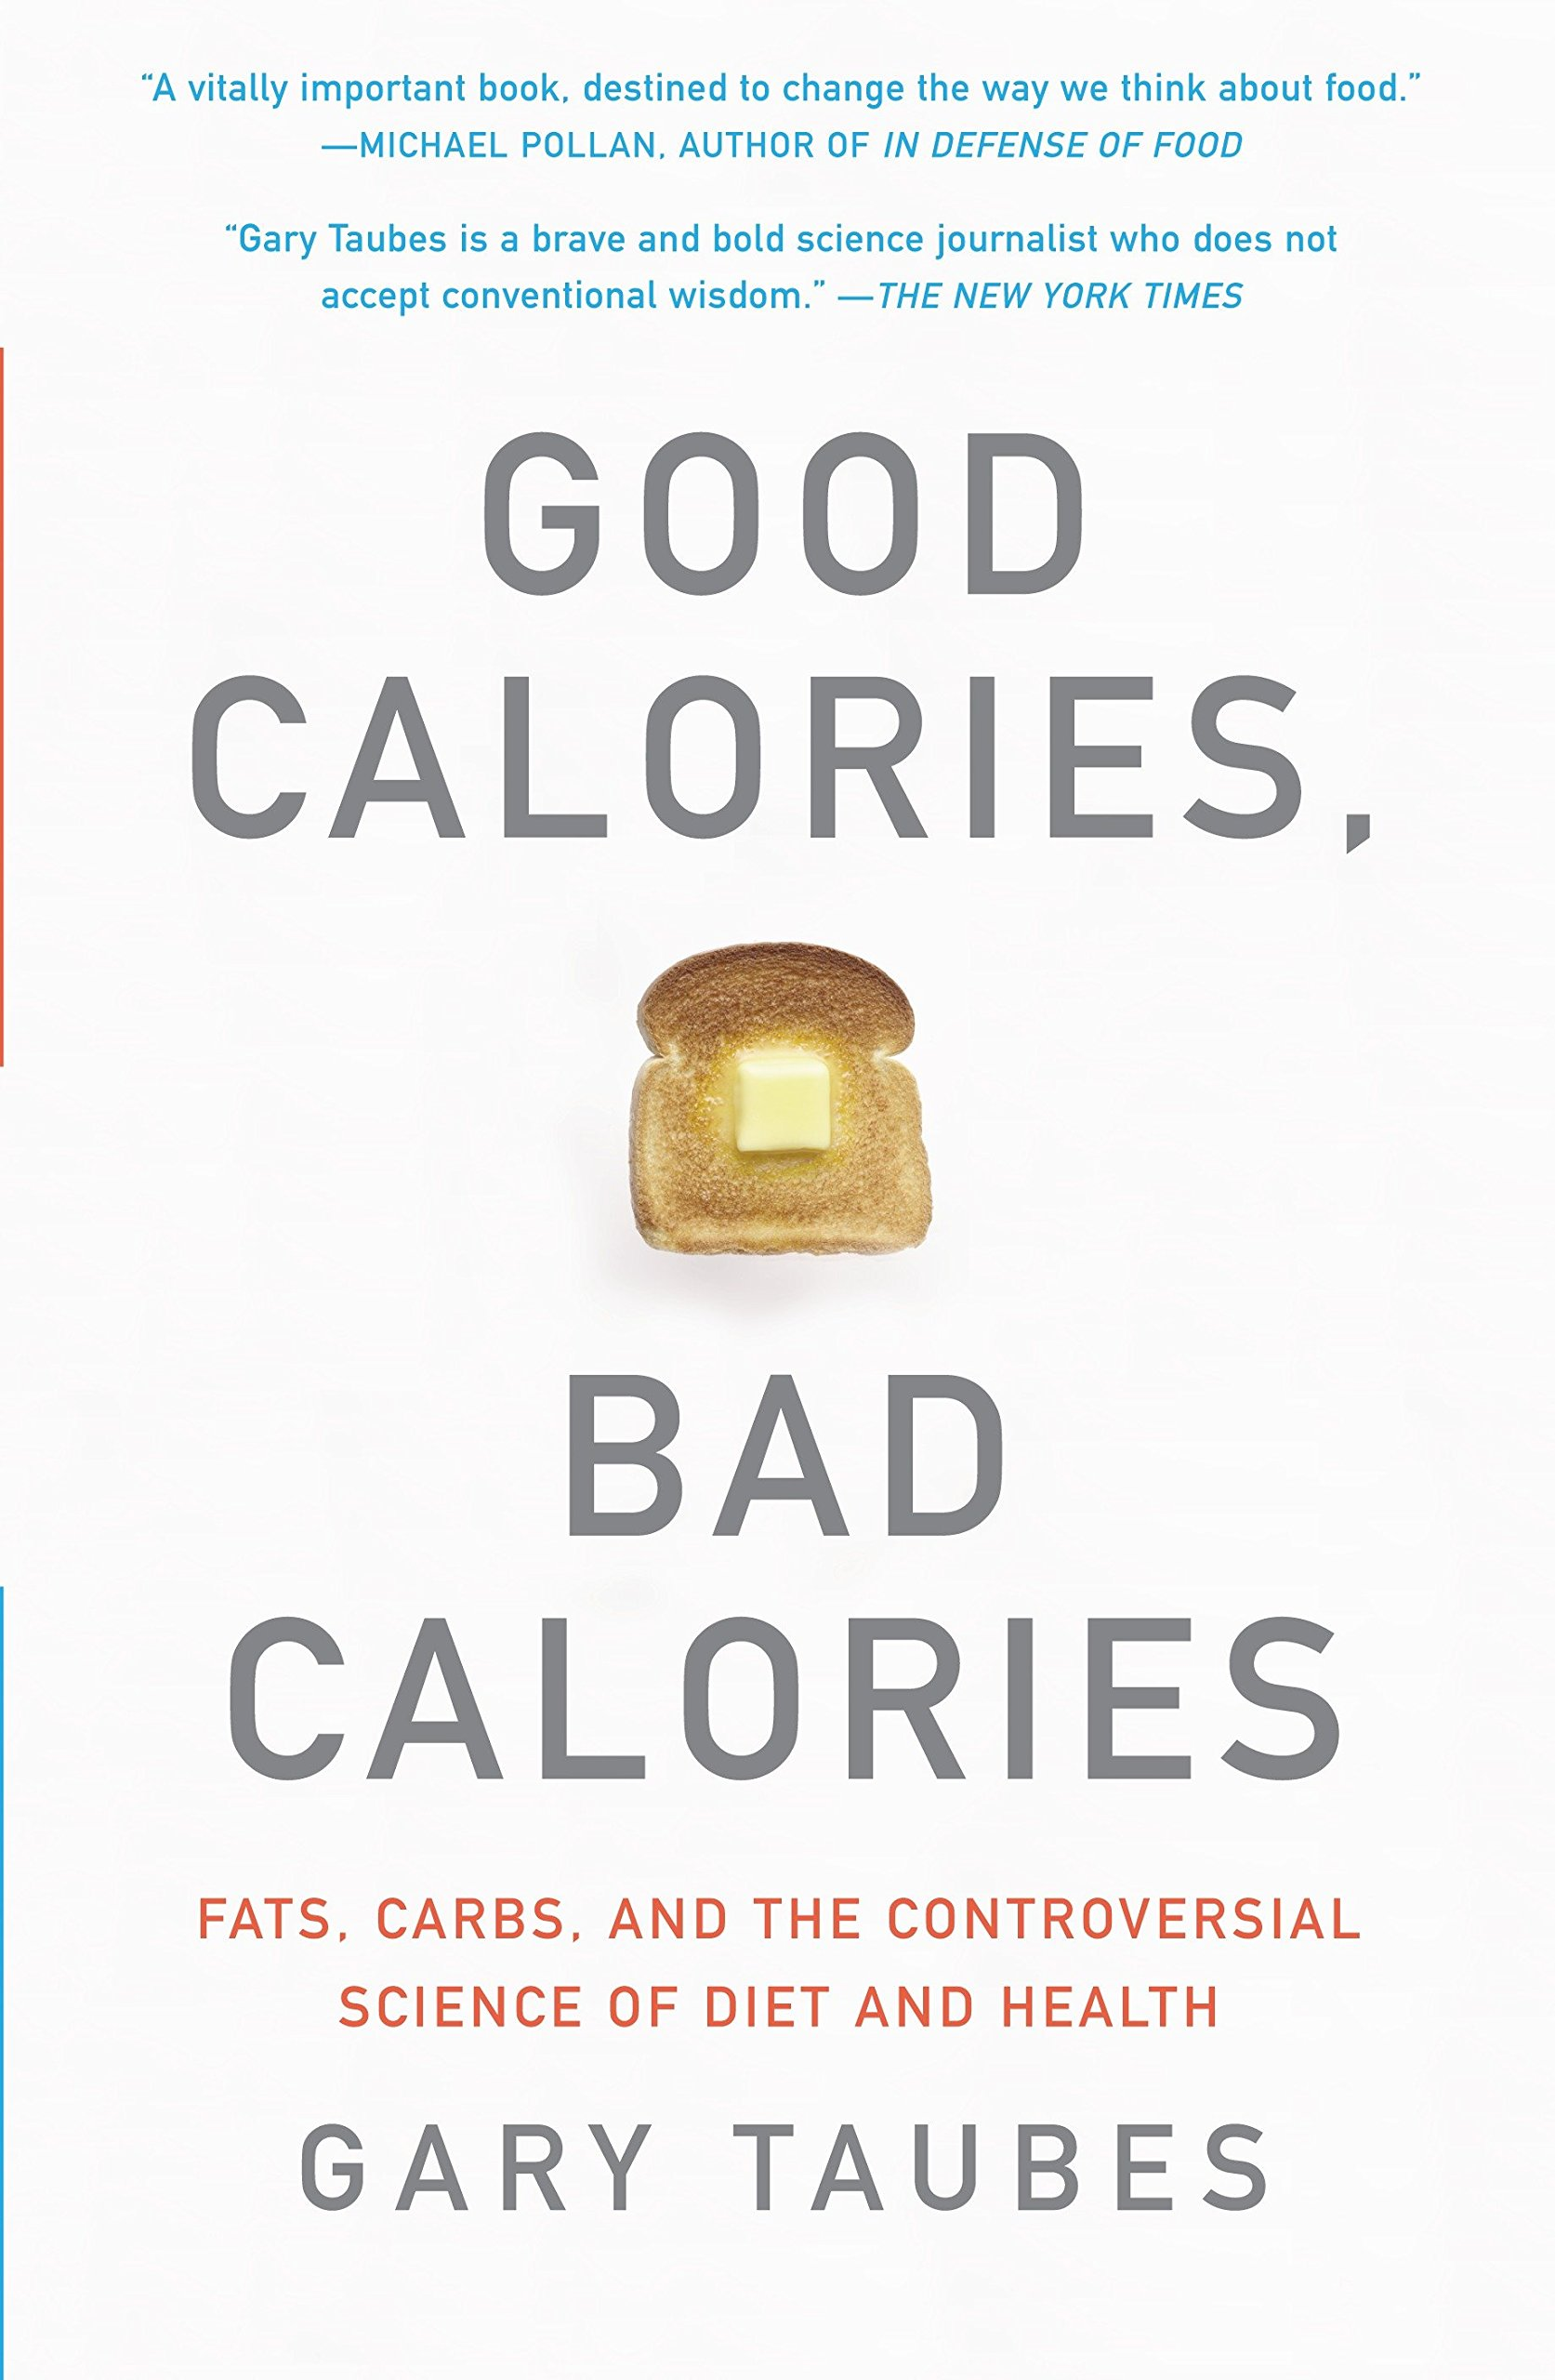 Good Calories Bad Calories  Fats Carbs And The Controversial Science Of Diet And Health